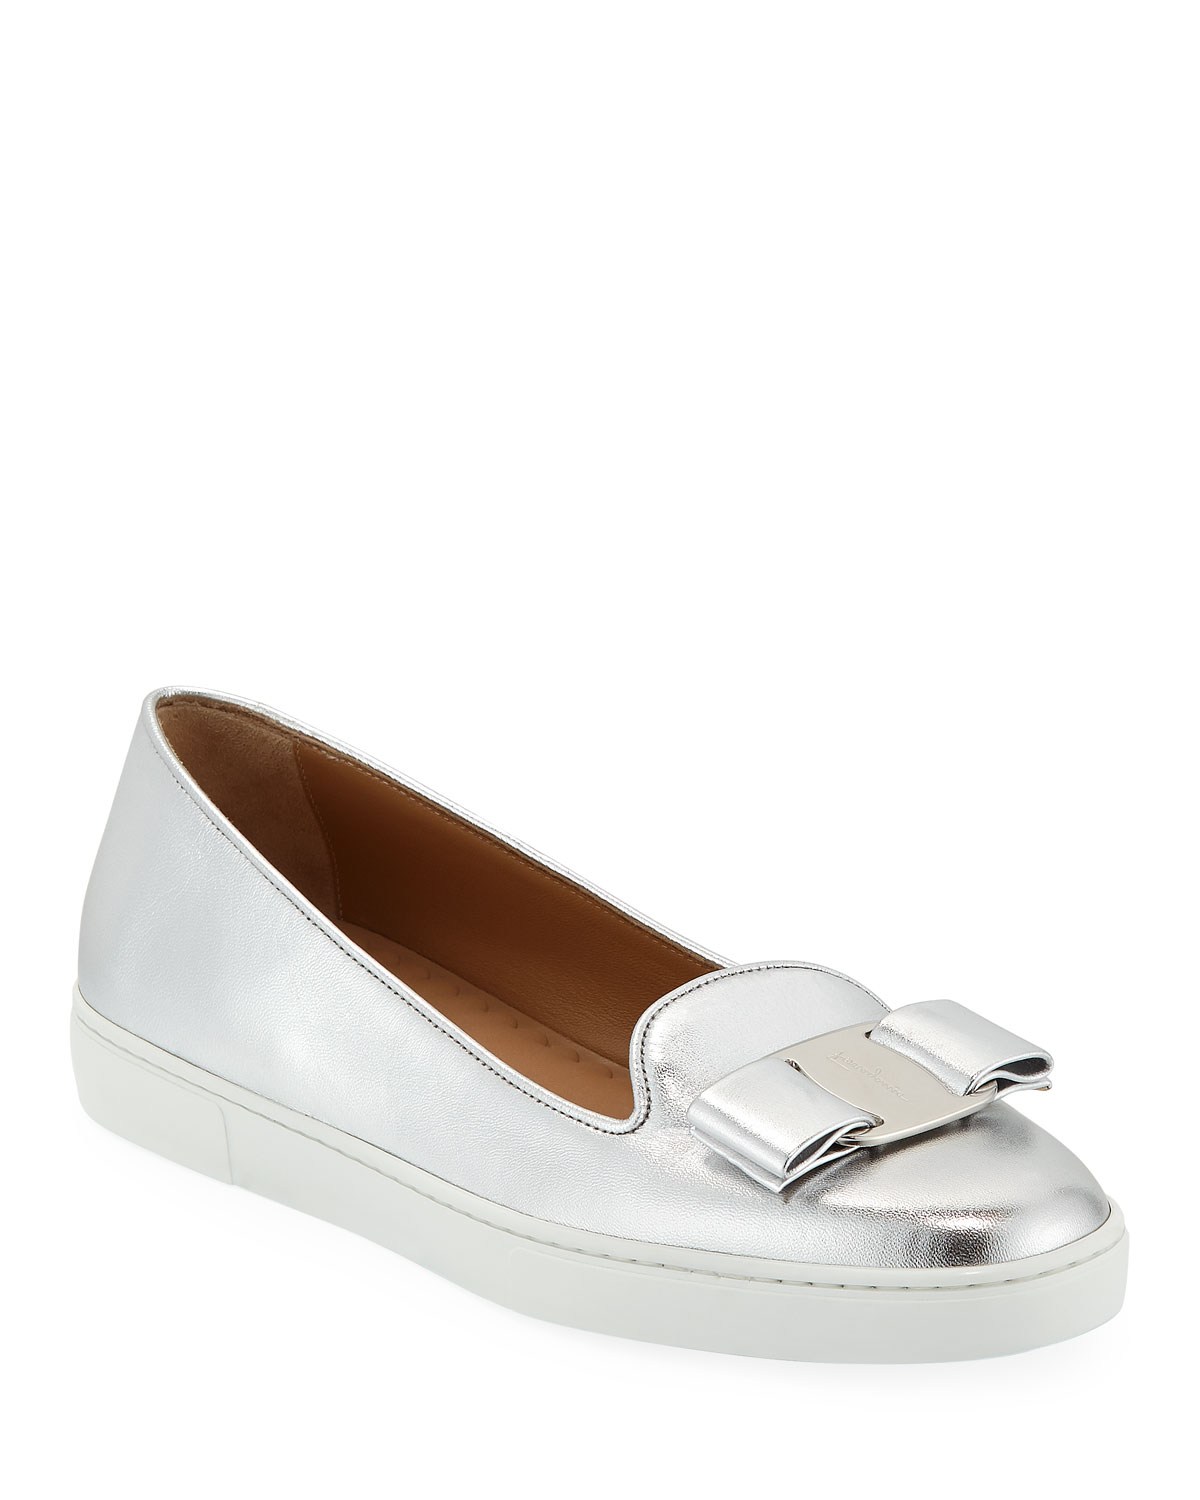 cfcc5e56b72ad Salvatore Ferragamo Novello Bow Slip-On Sneakers